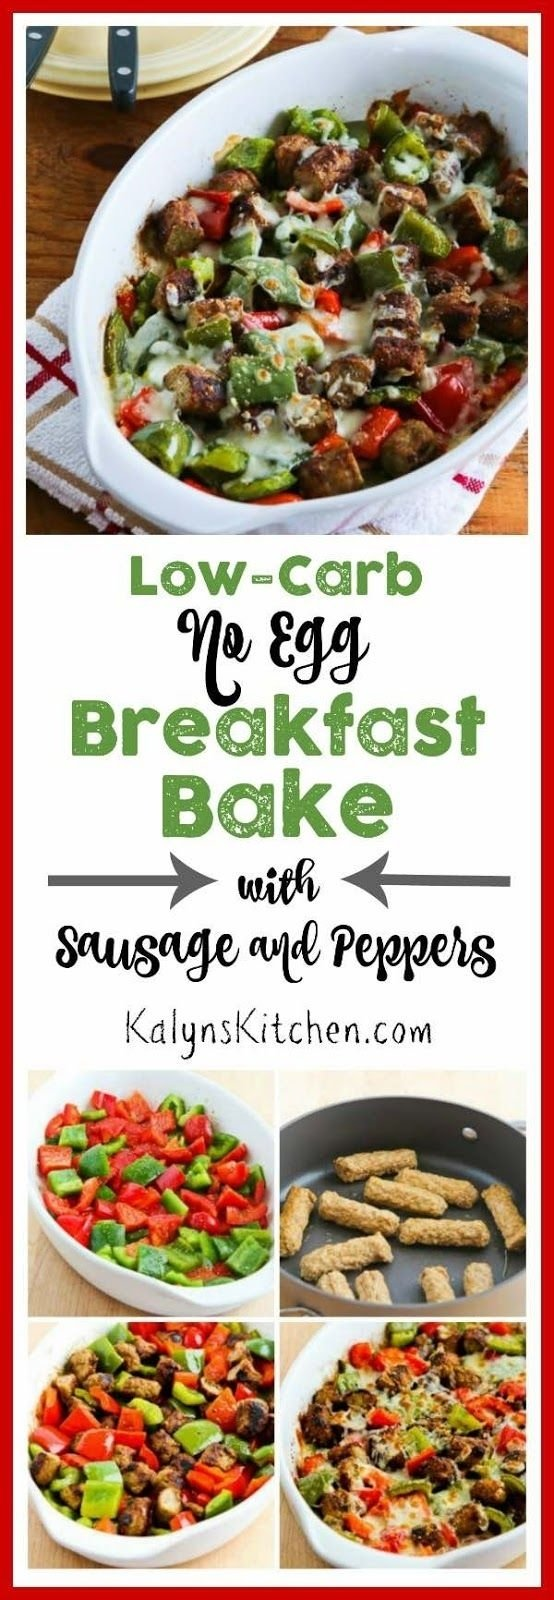 10 Nice South Beach Diet Breakfast Ideas 18 best egg free keto breakfasts images on pinterest breakfast 2021